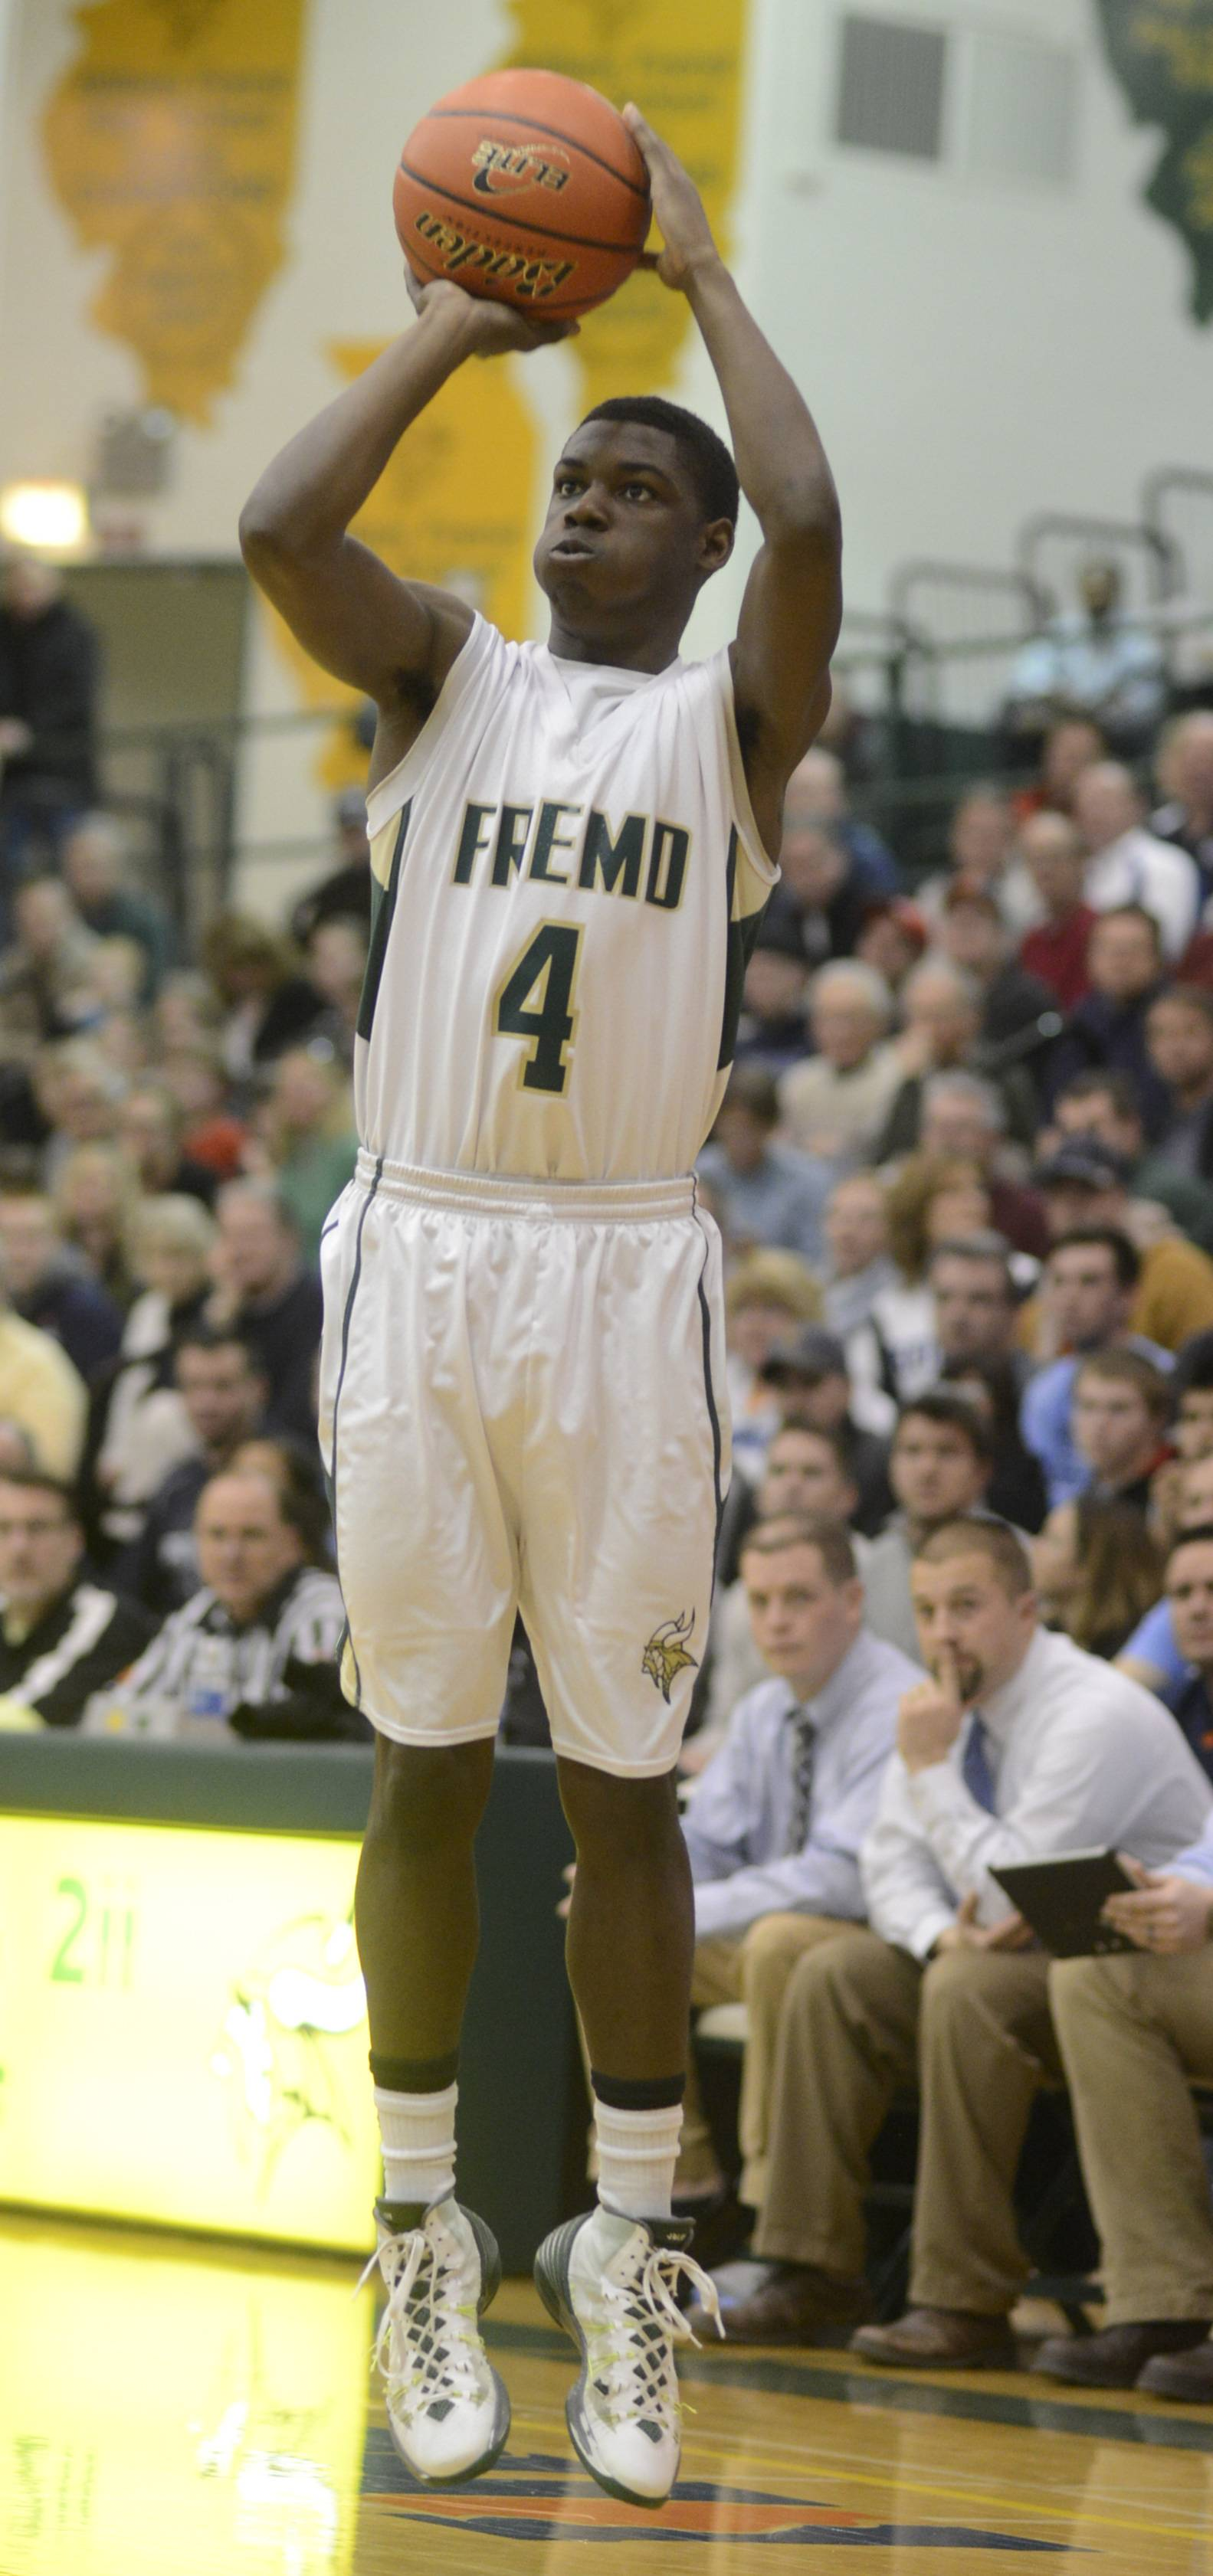 Photos from the Fremd vs. Prospect boys MSL championship basketball game on Wednesday, February 26th, in Palatine.